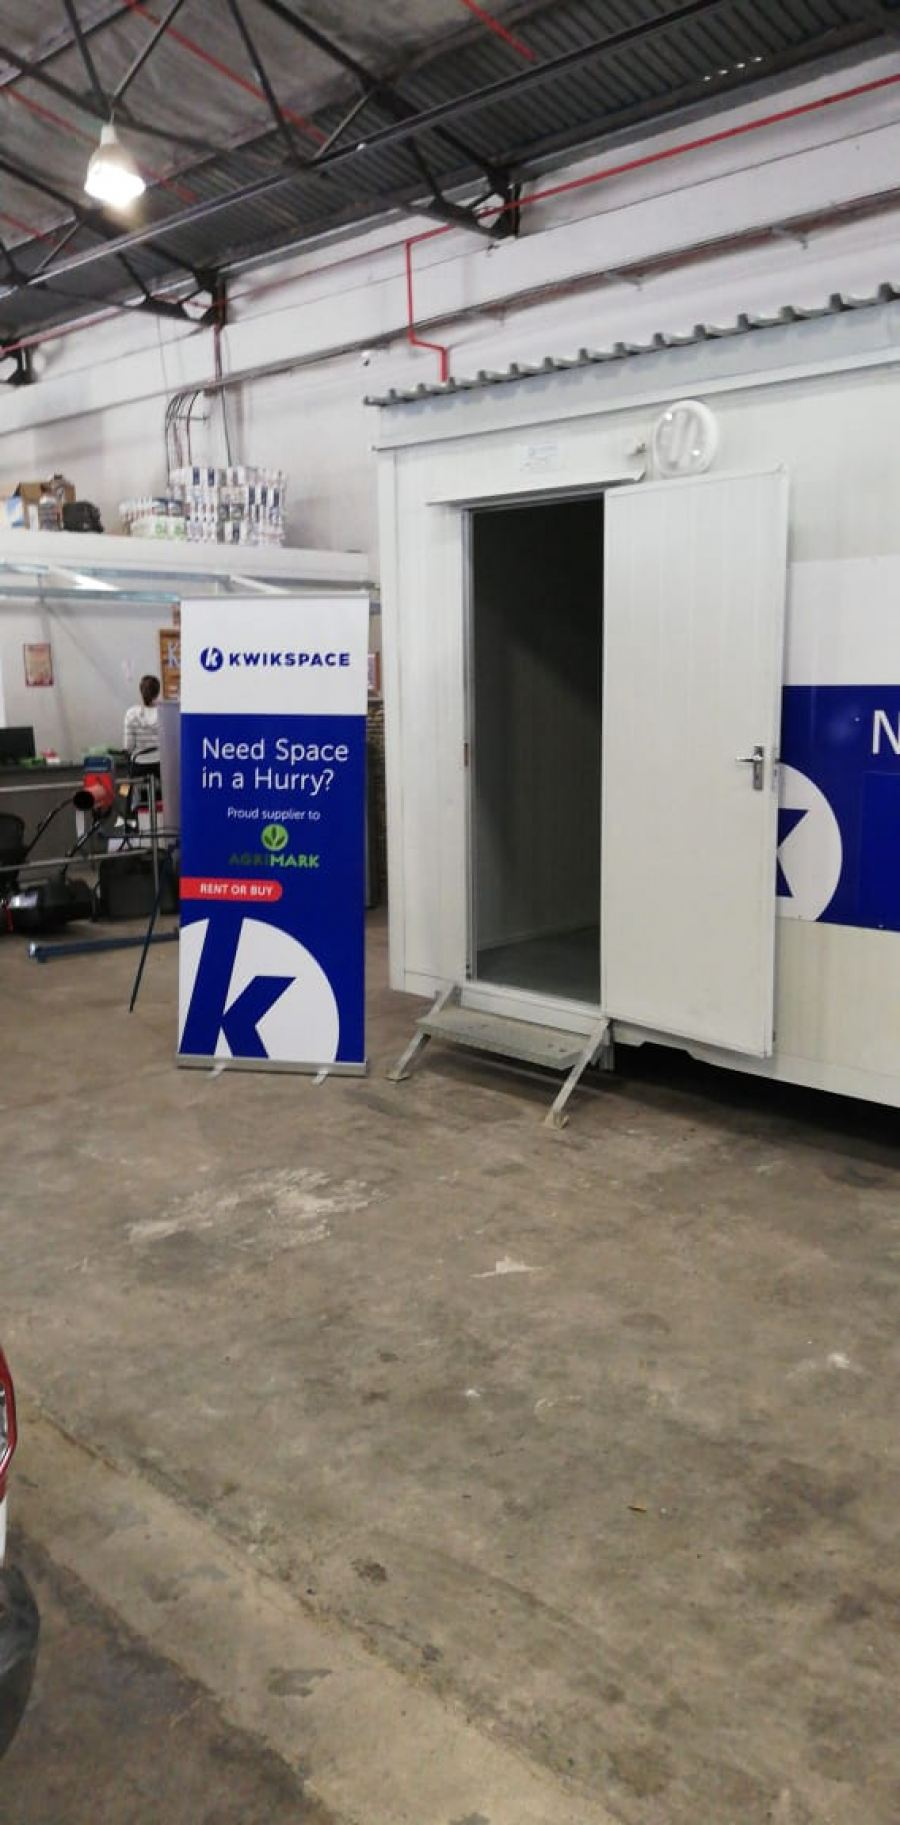 A portion of the Kwikspace relocatable unit at the Kaap Agri store in Paarl and one of the promotional banners. Sales personnel receive Kwikspace training and are perfectly positioned to answer any Kwikspace queries.